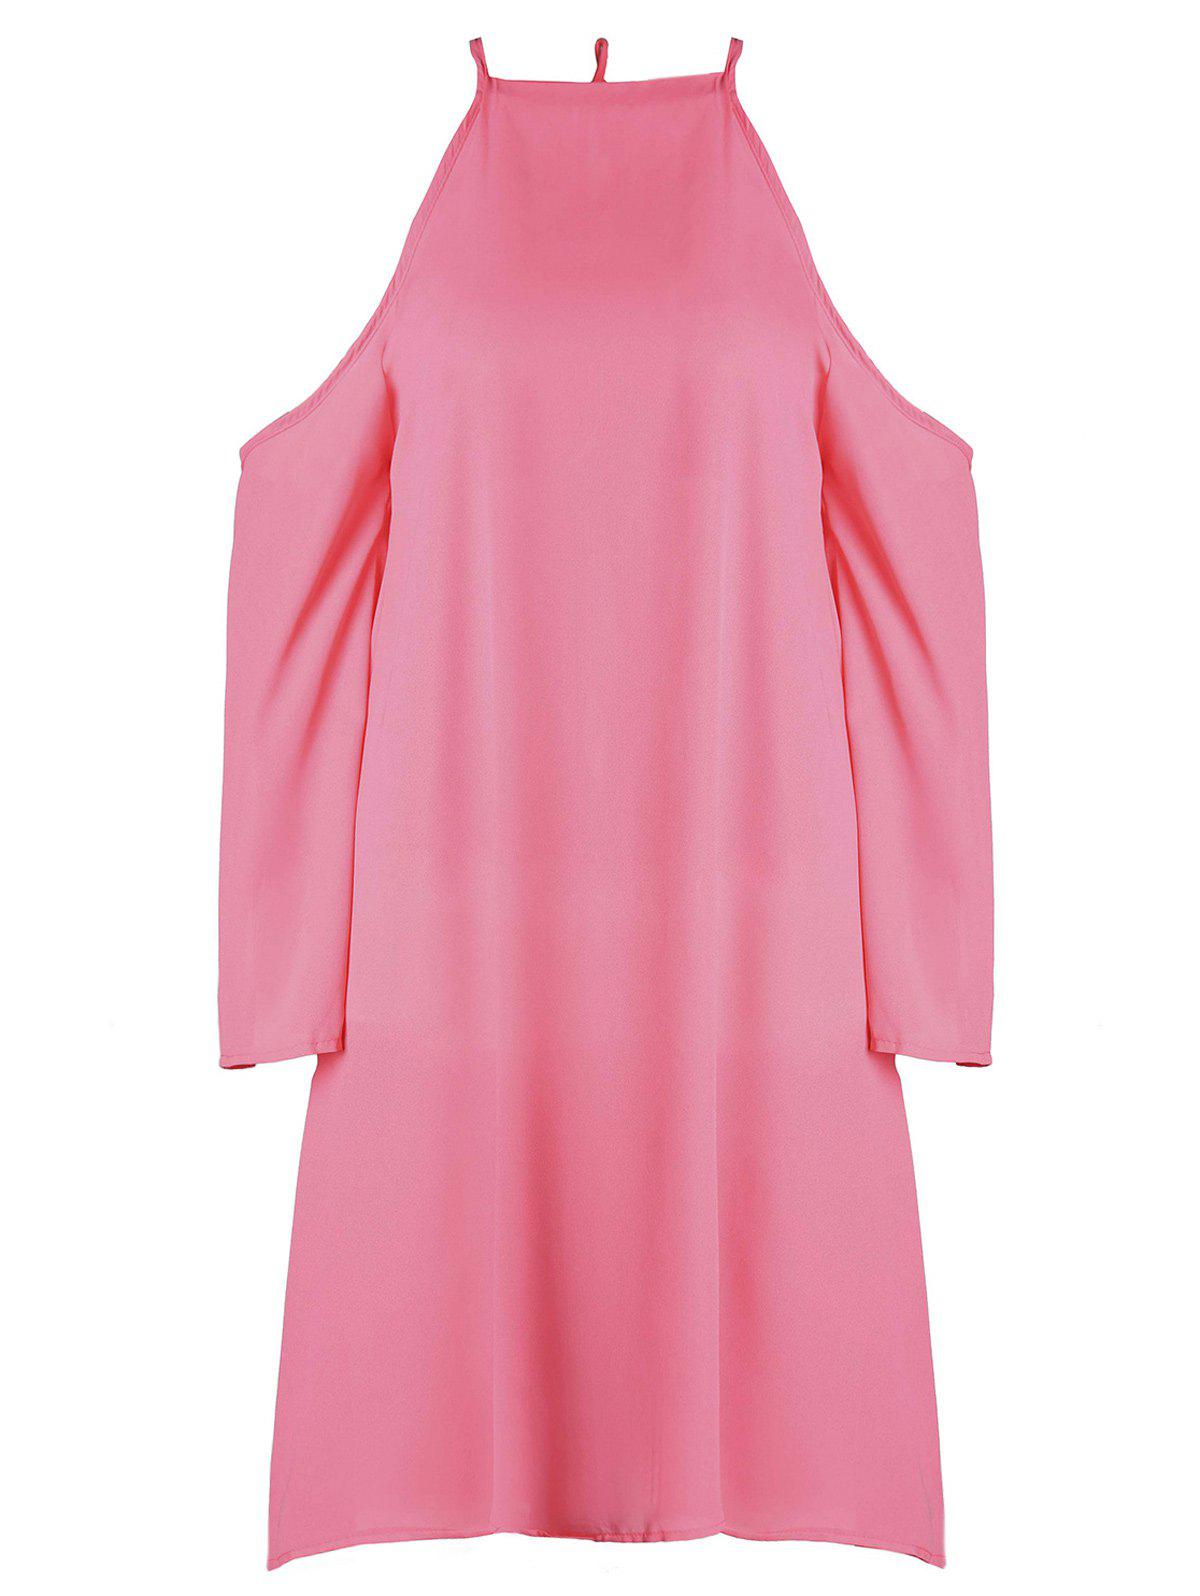 Sweet Red Round Collar A-Line Long Sleeve Dress For WomenWomen<br><br><br>Size: L<br>Color: RED